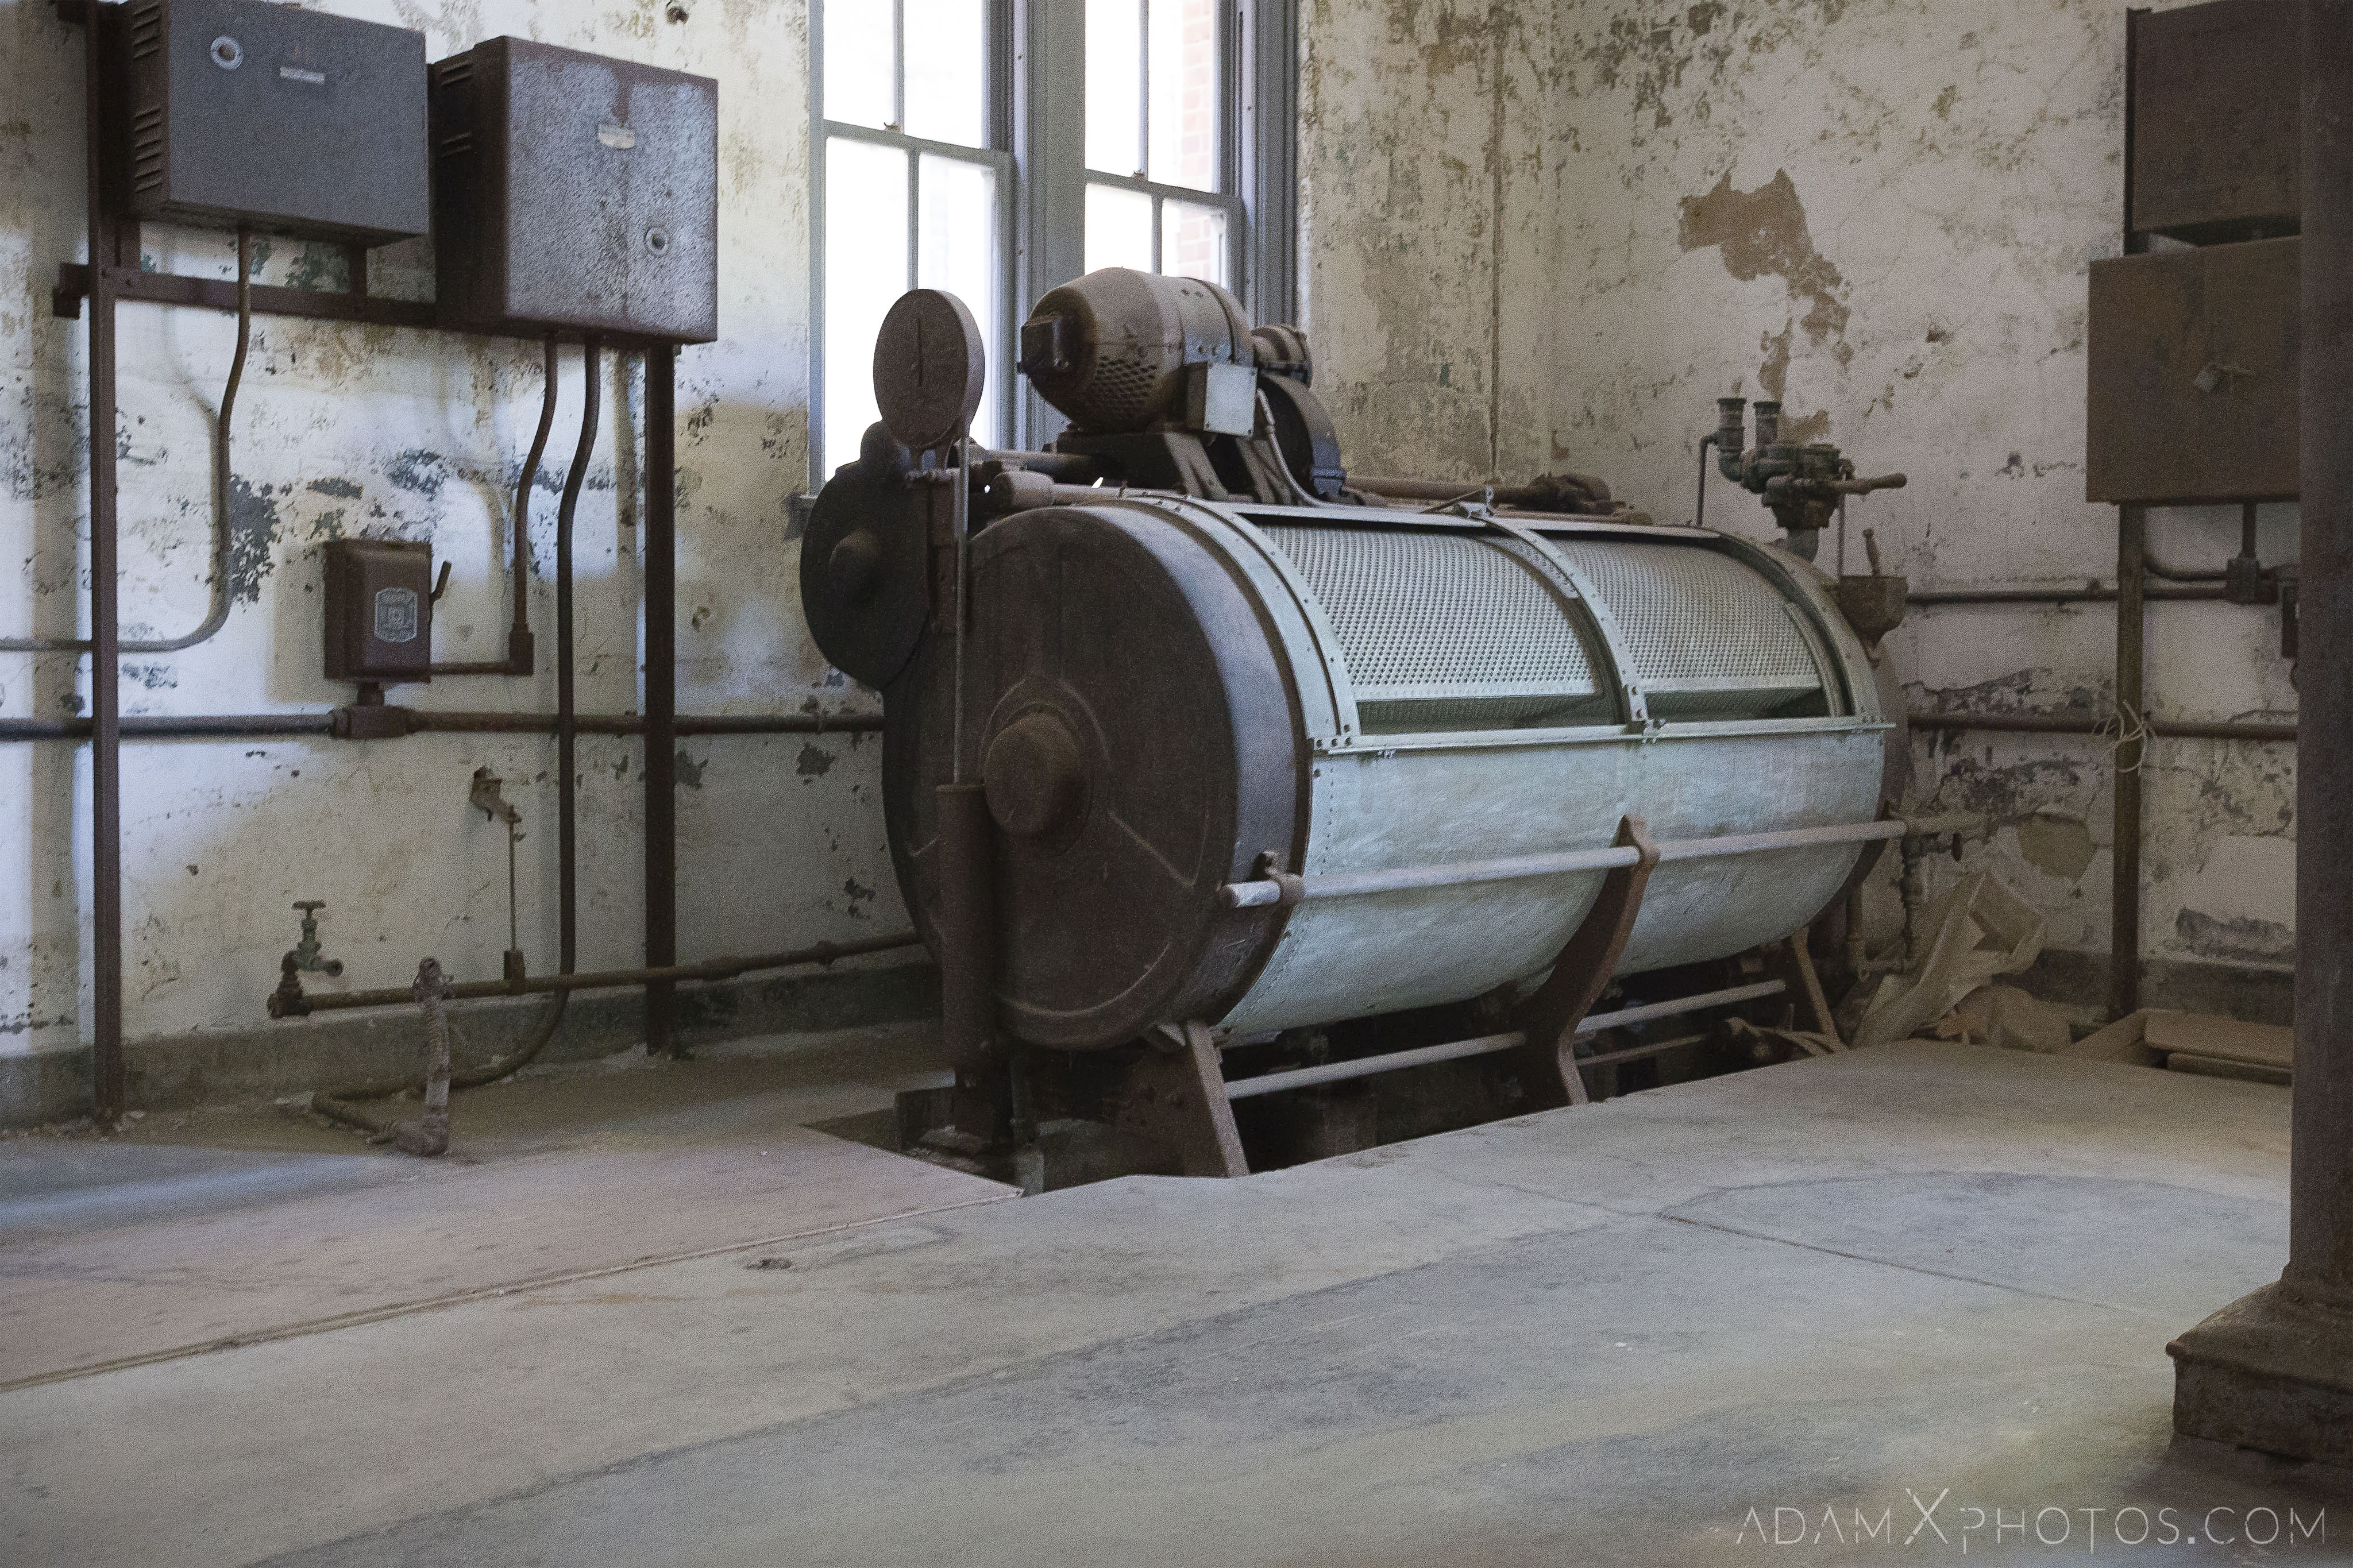 Smith drum machine laundry room Ellis Island Immigrant Hospital New York USPHS Hospital #43 Adam X Adamxphotos Urbex Urban Exploration Access 2017 Abandoned decay ruins lost forgotten derelict location creepy haunting eerie